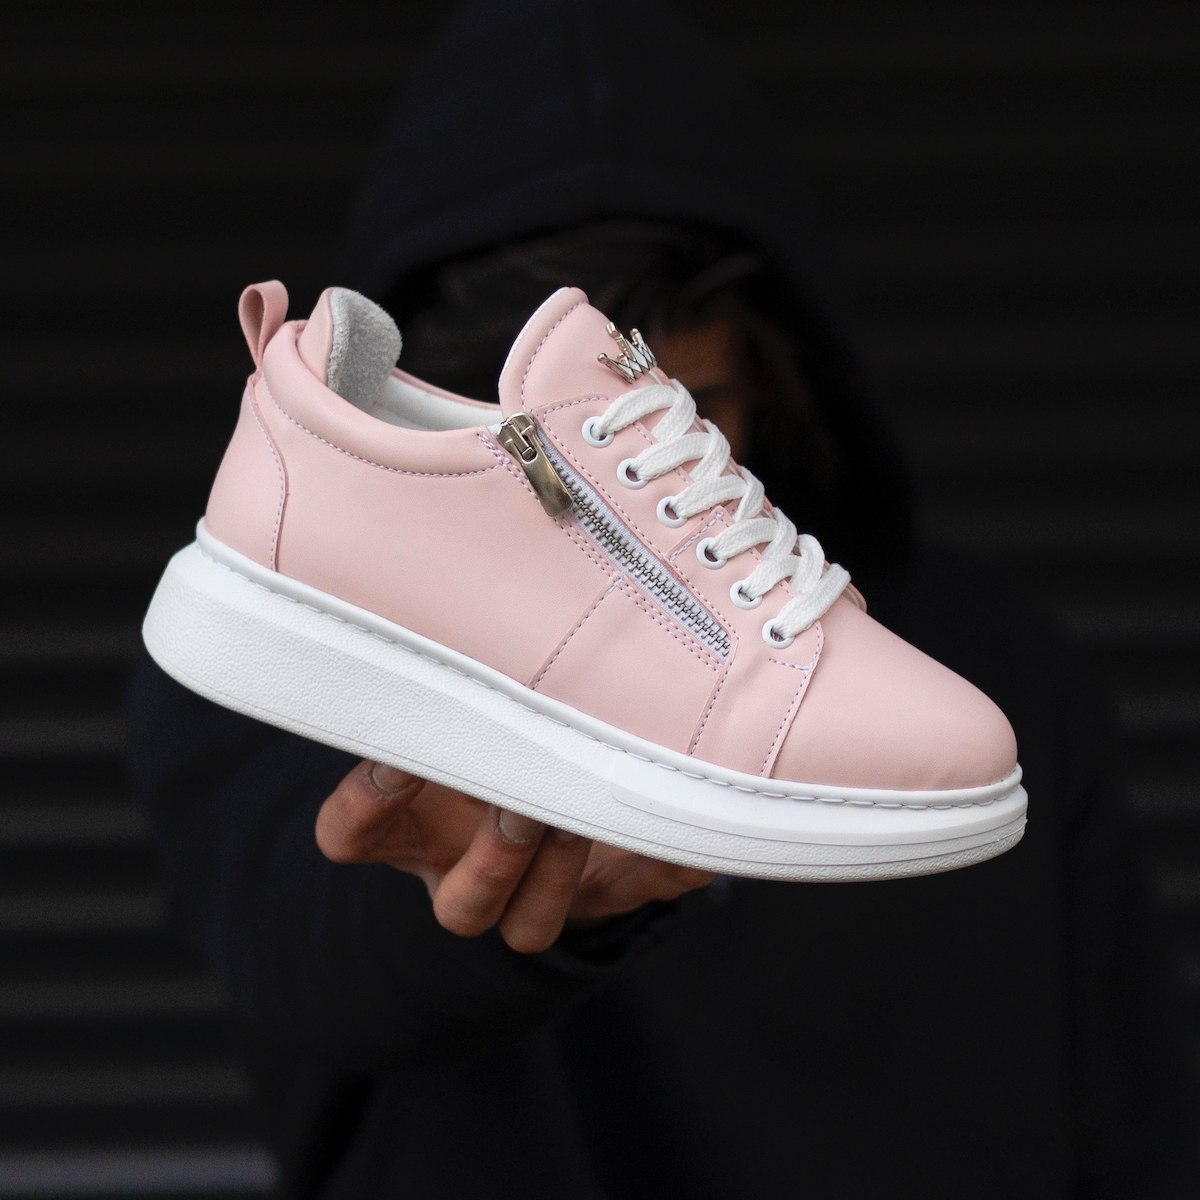 Woman Hype Sole Zipped Style Full Pink Sneakers